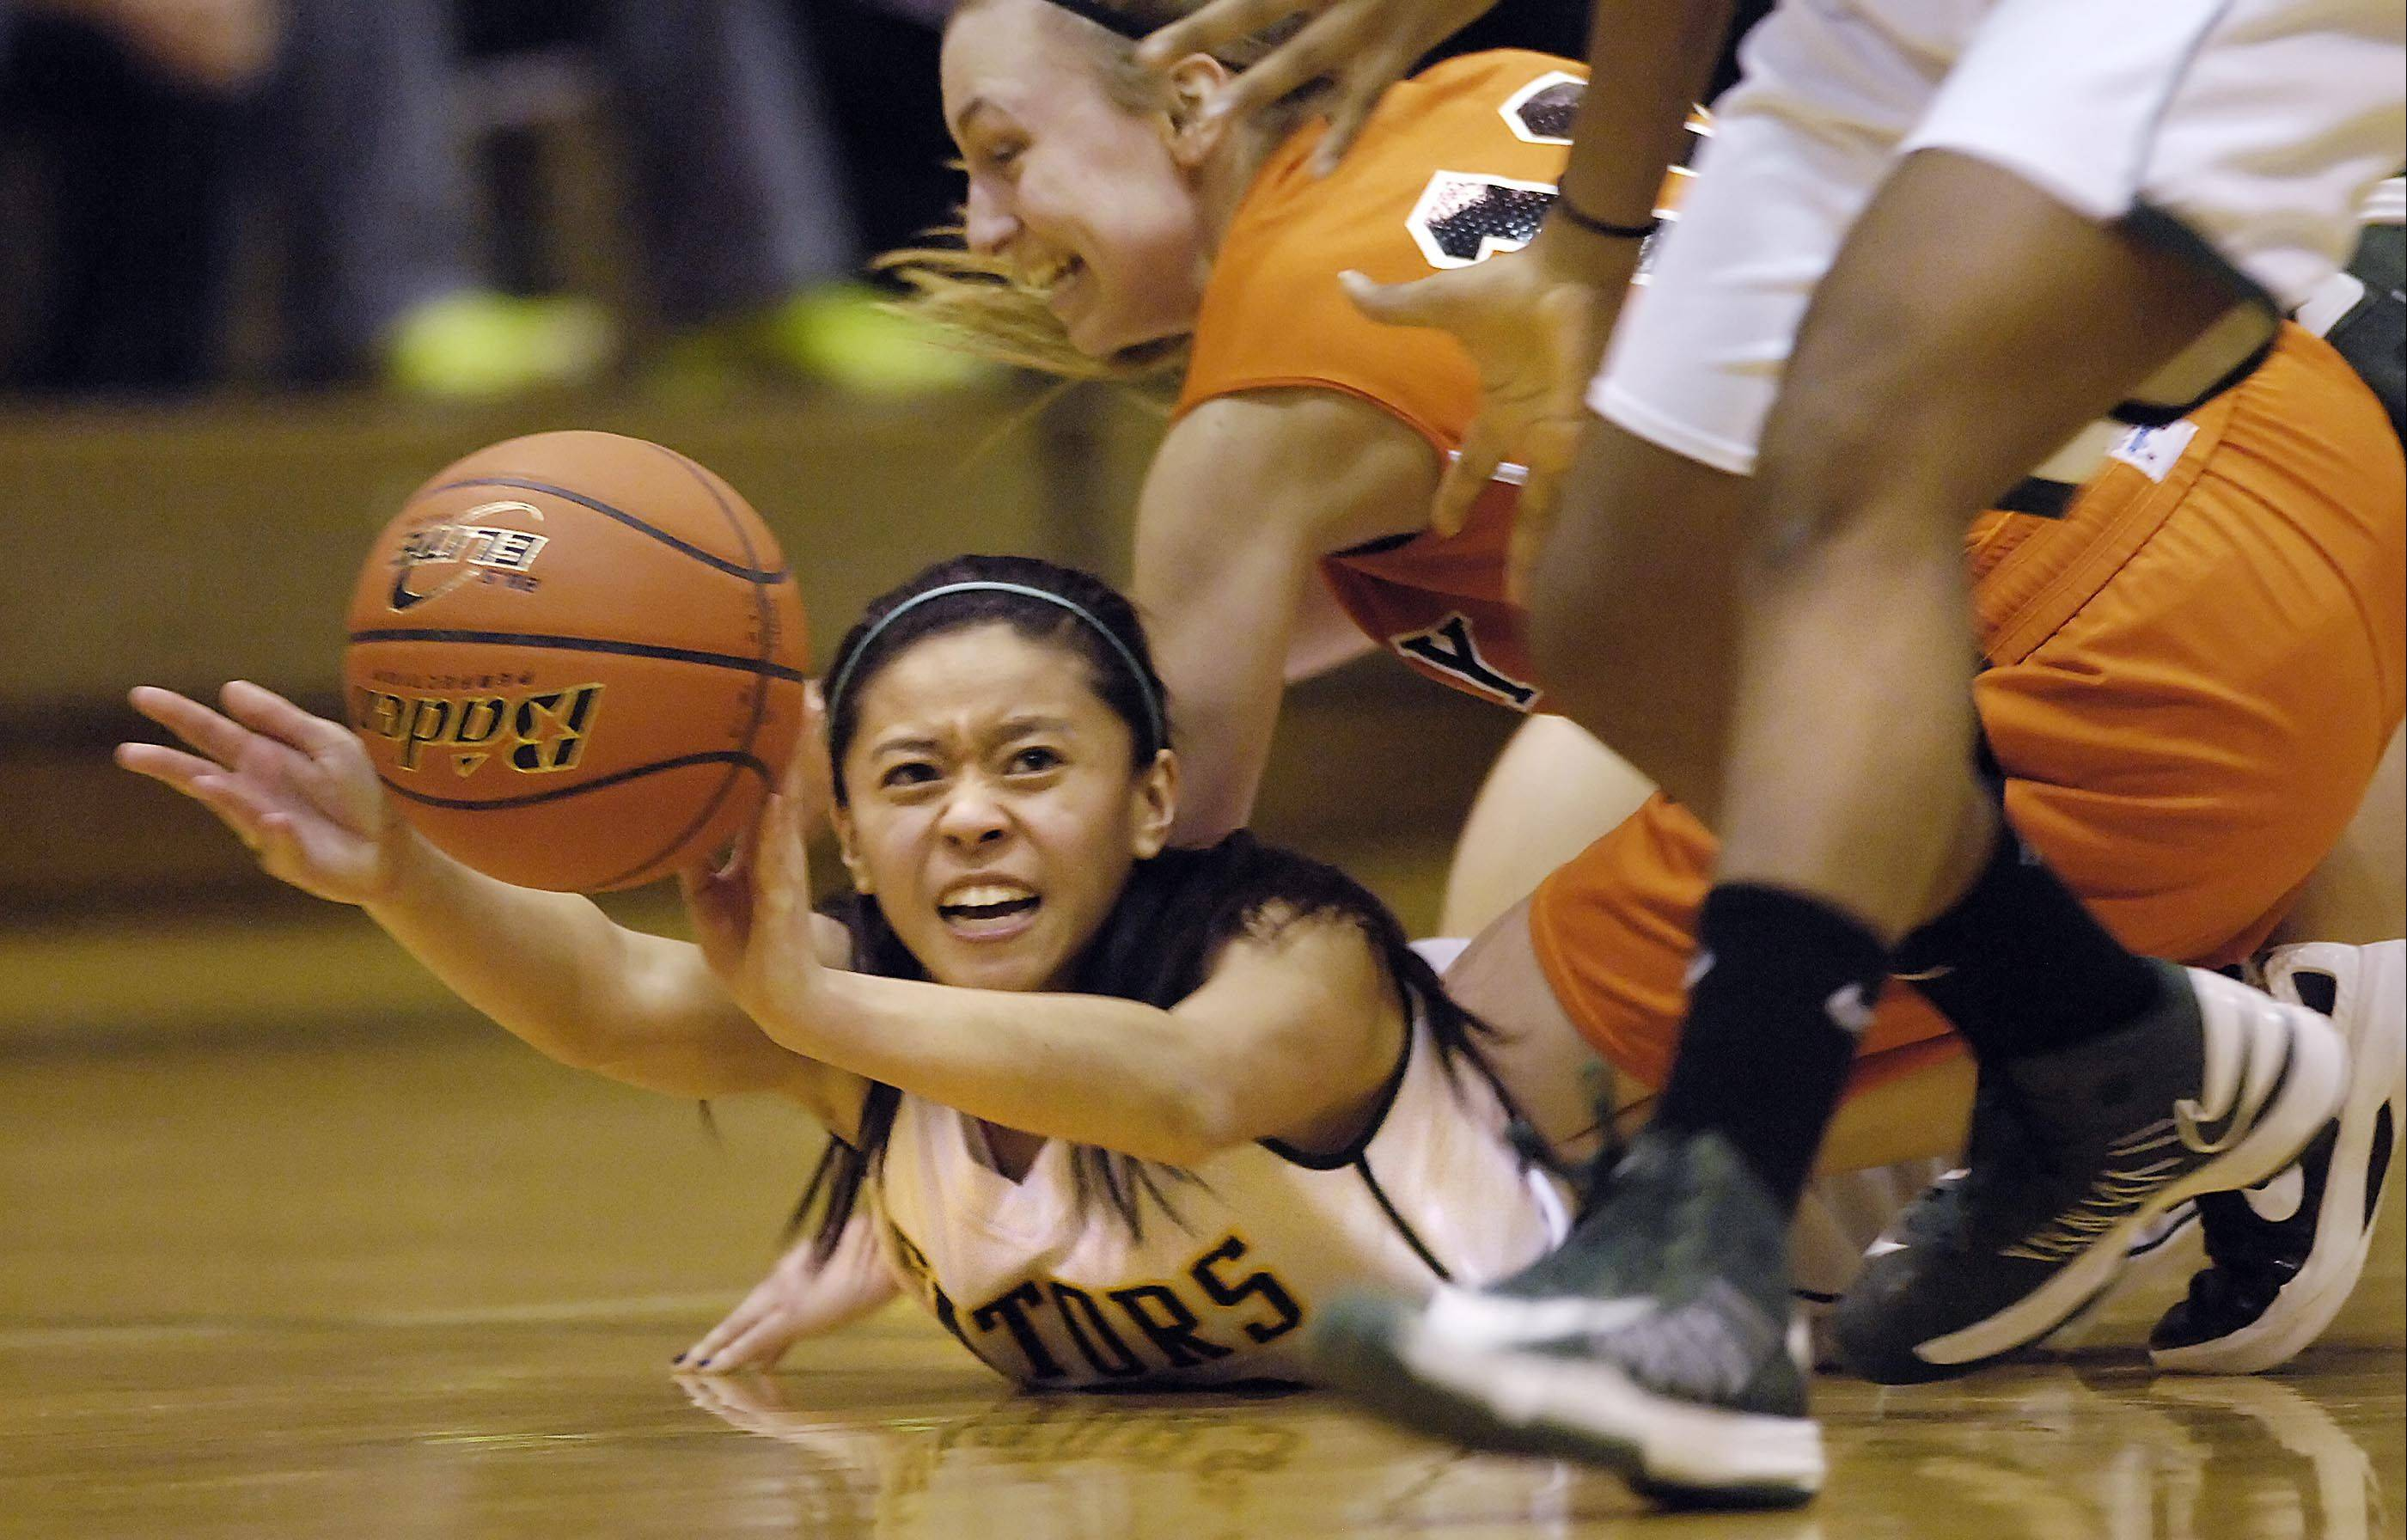 Crystal Lake South's Gaby De Jesus (22) passes to teammate Kianna Clark as McHenry's Laura D'Angelo falls on her back Wednesday in Crystal Lake.